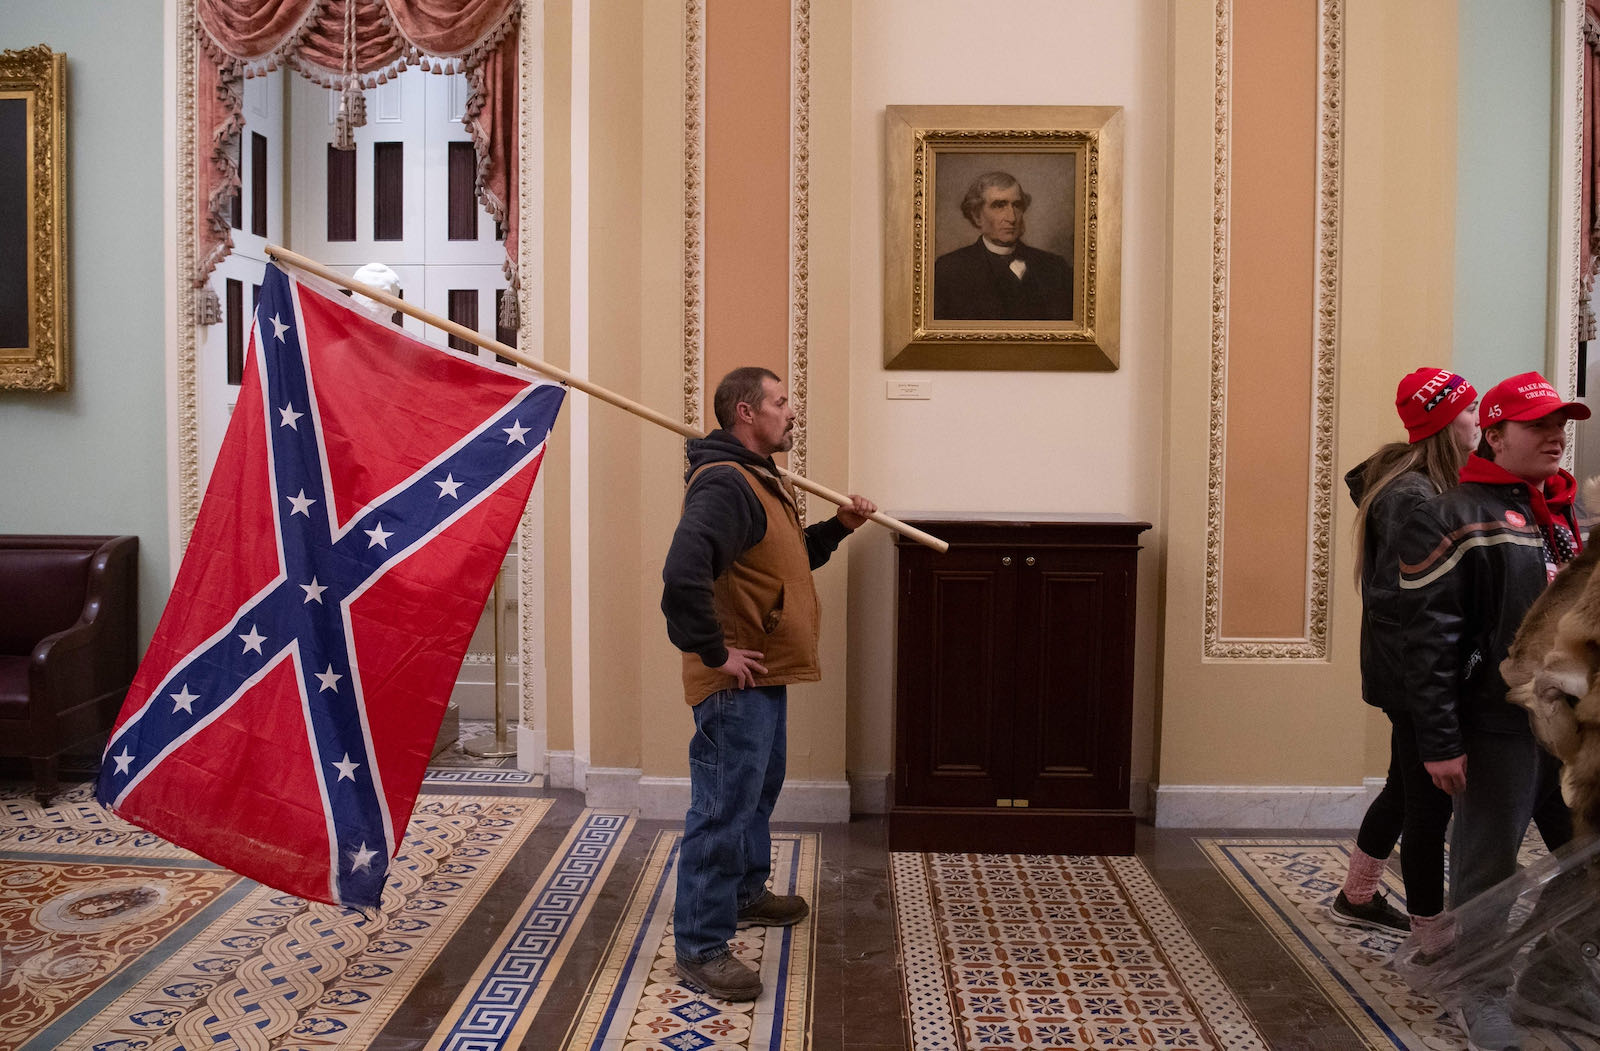 A Trump supporter carrying a Confederate flag, 2021